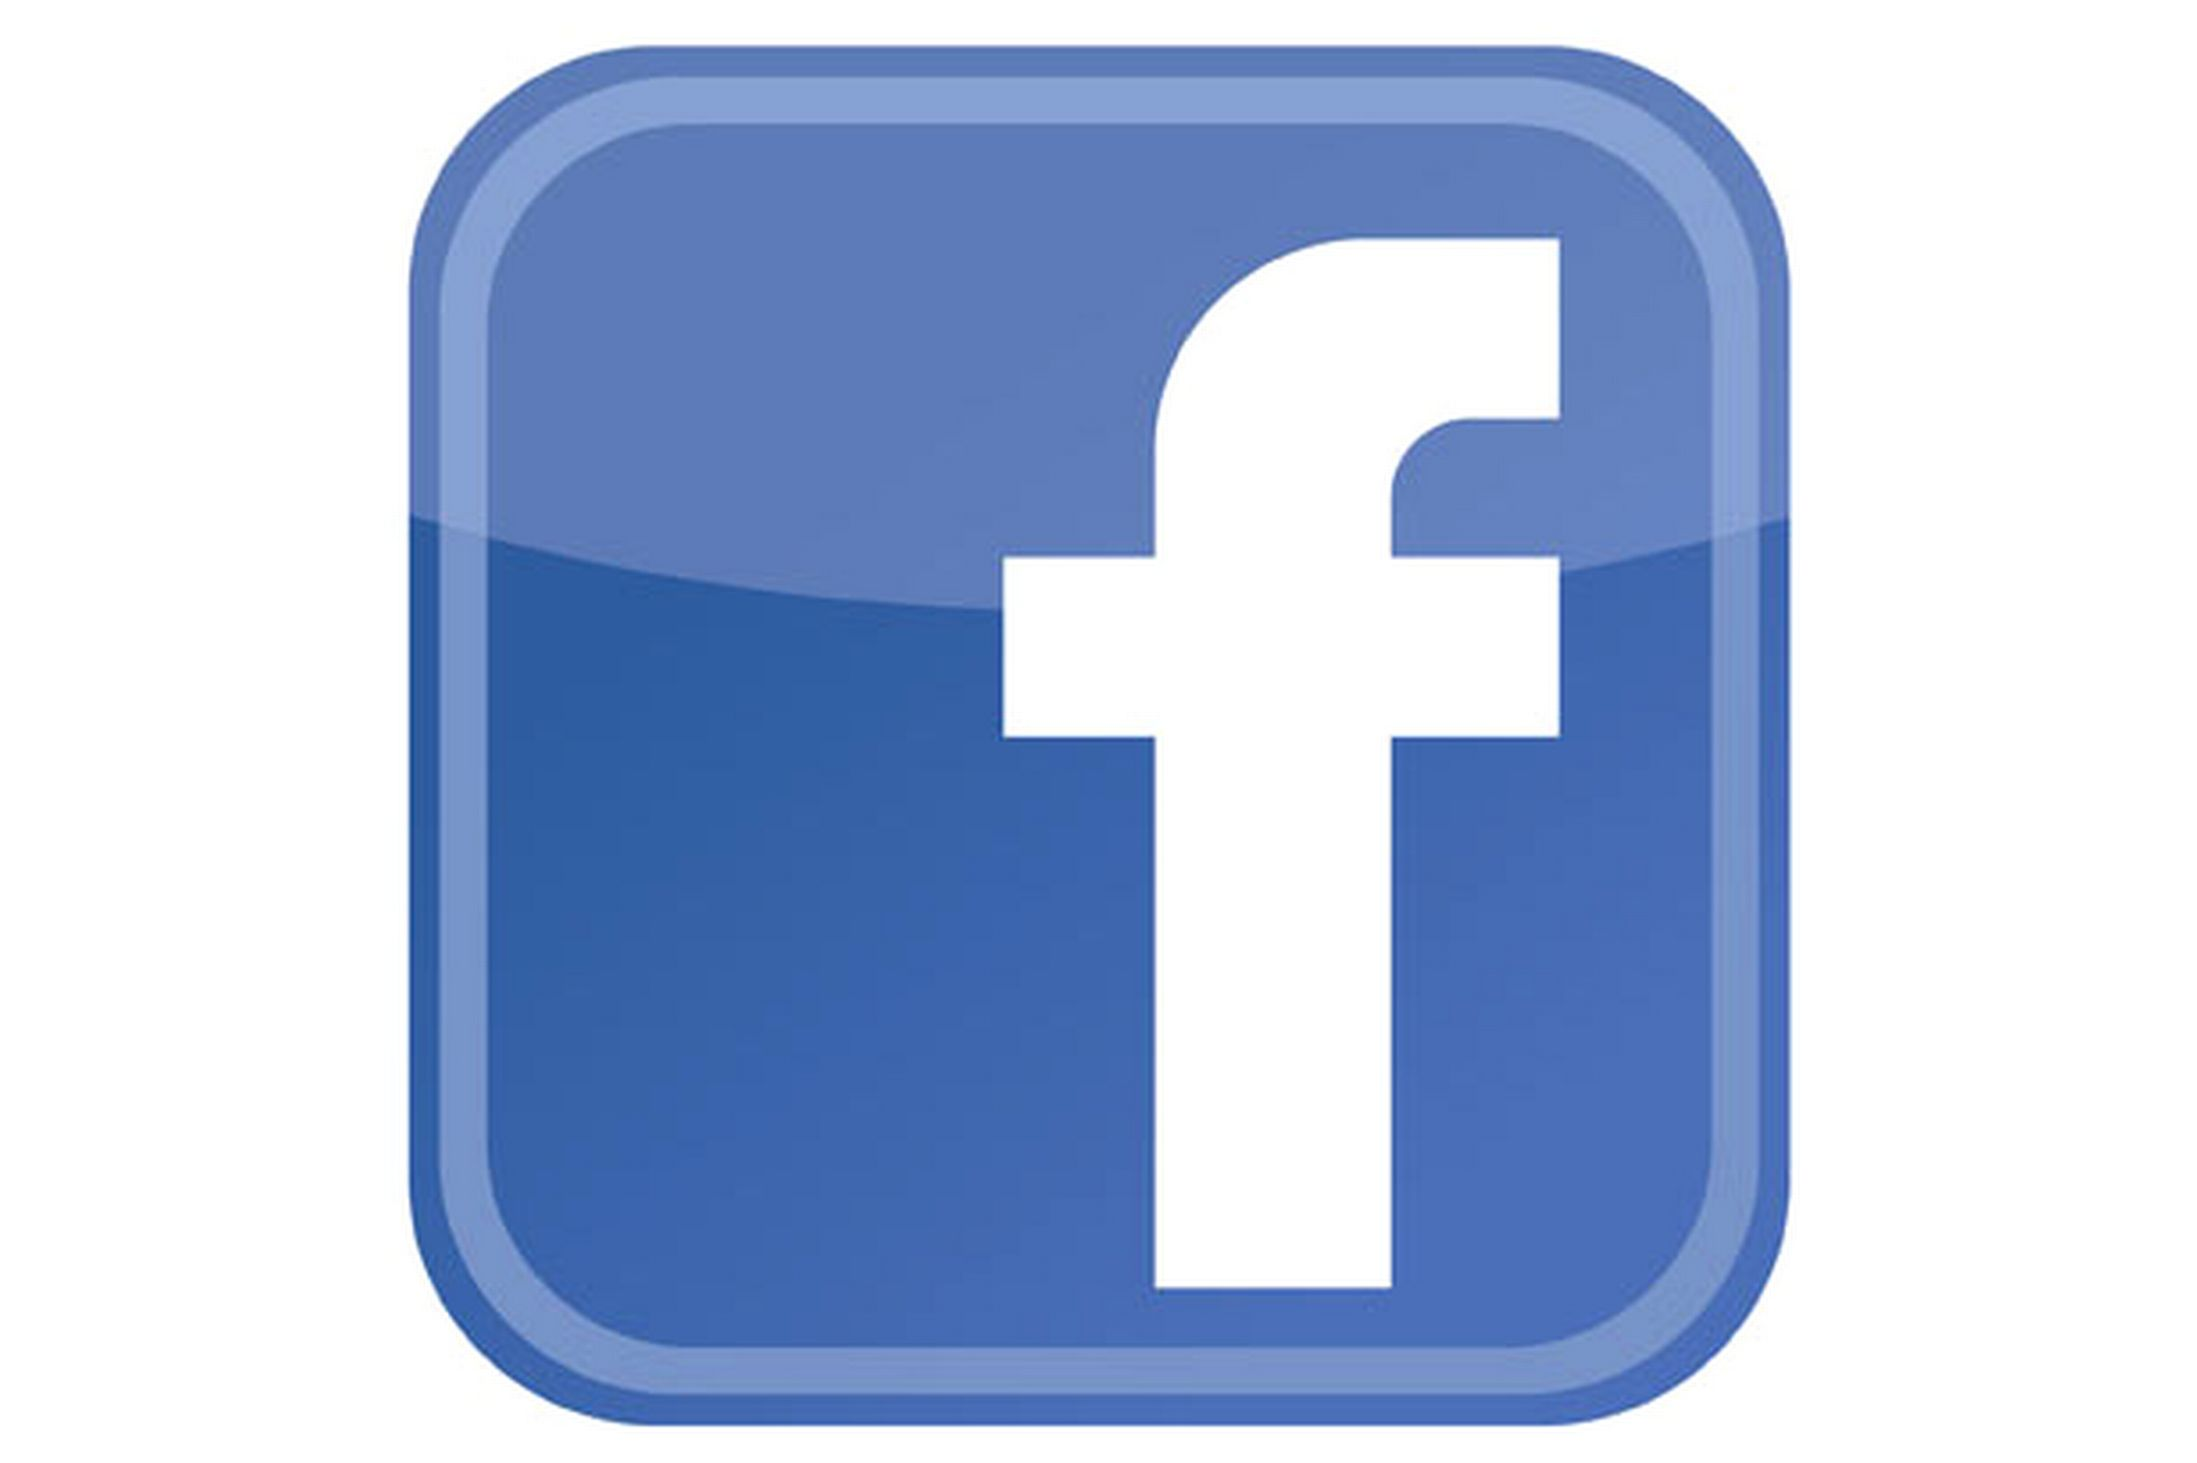 facebook app developer, facebook application developer, facebook app development, facebook application development